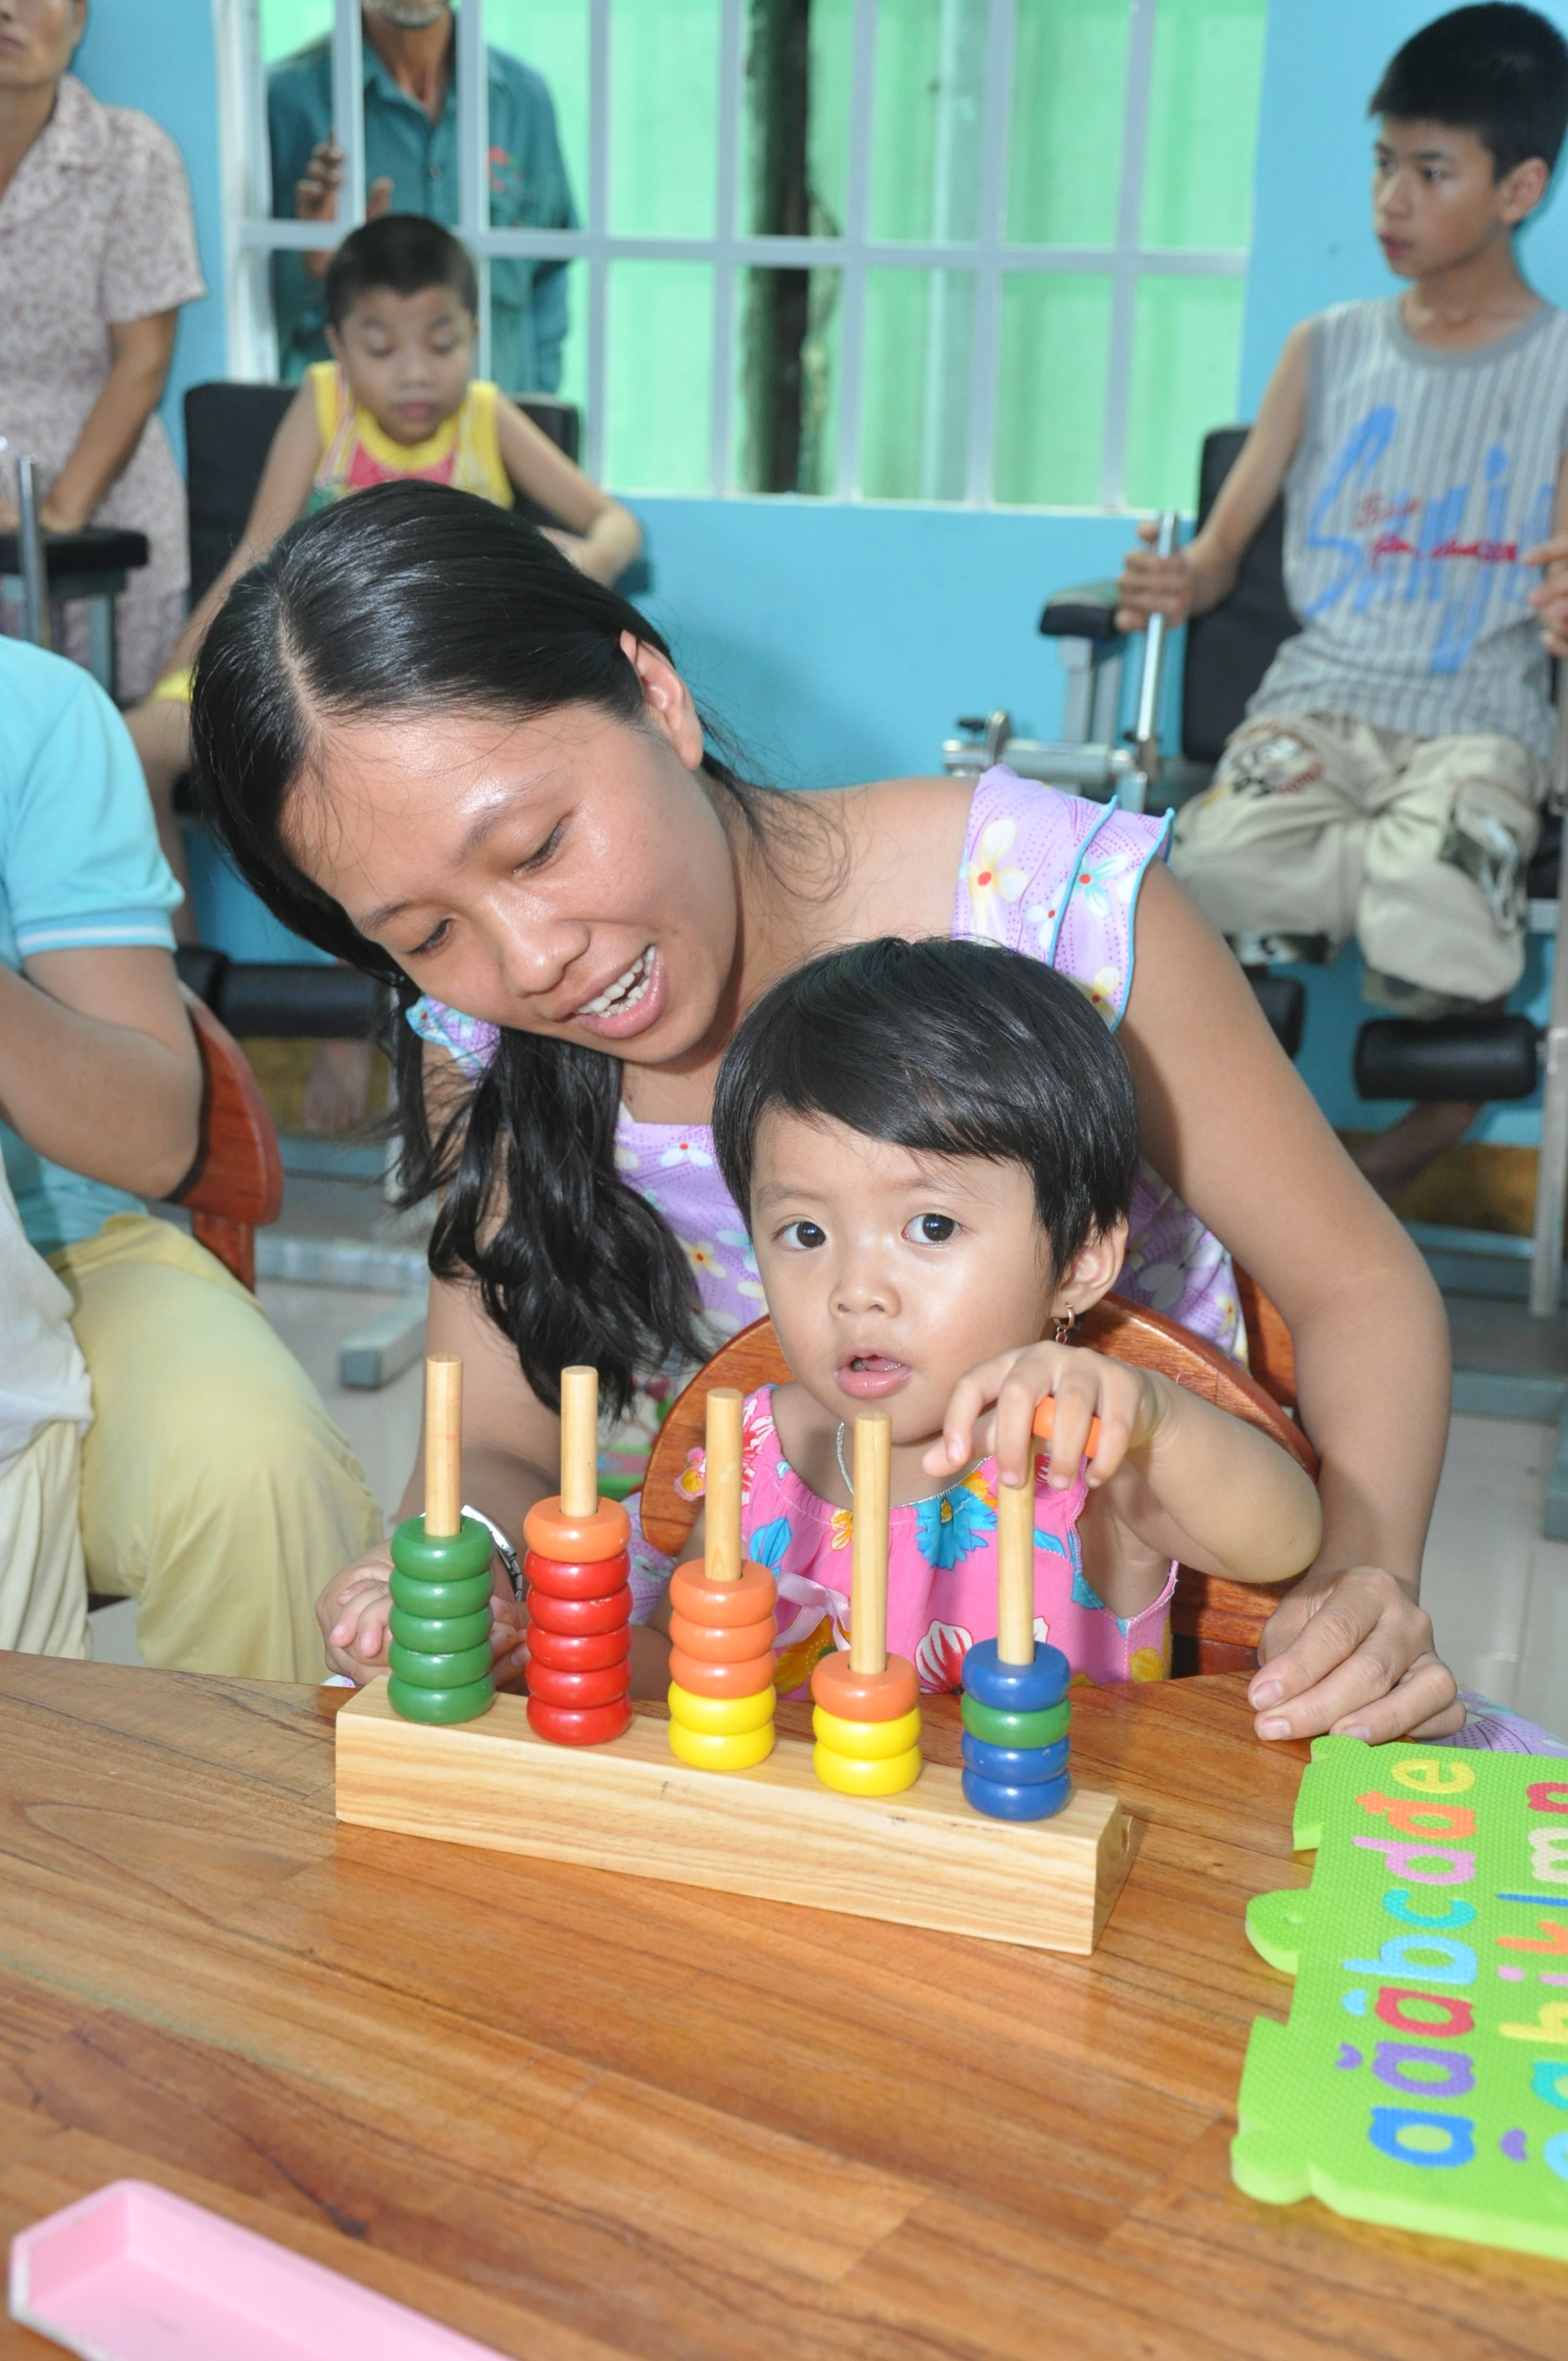 USAID has had programs in Vietnam since 1989, starting with activities in support of persons with disabilities